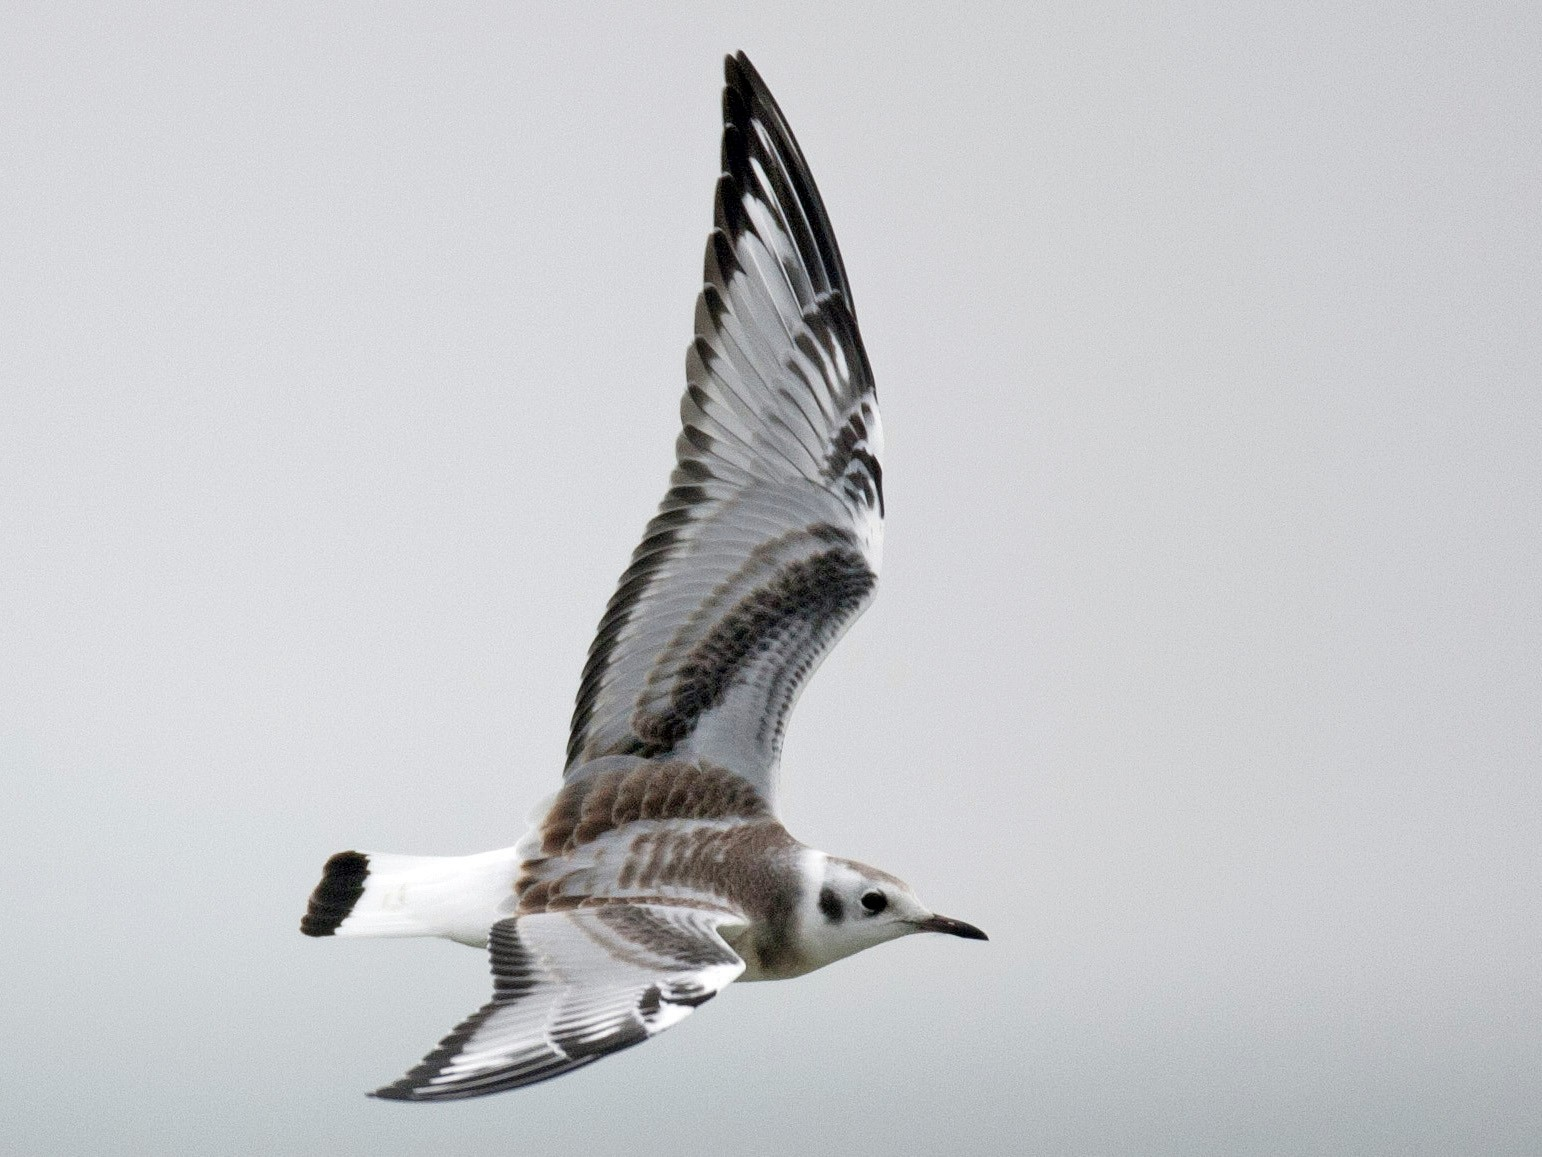 Bonaparte's Gull - Brandon Holden